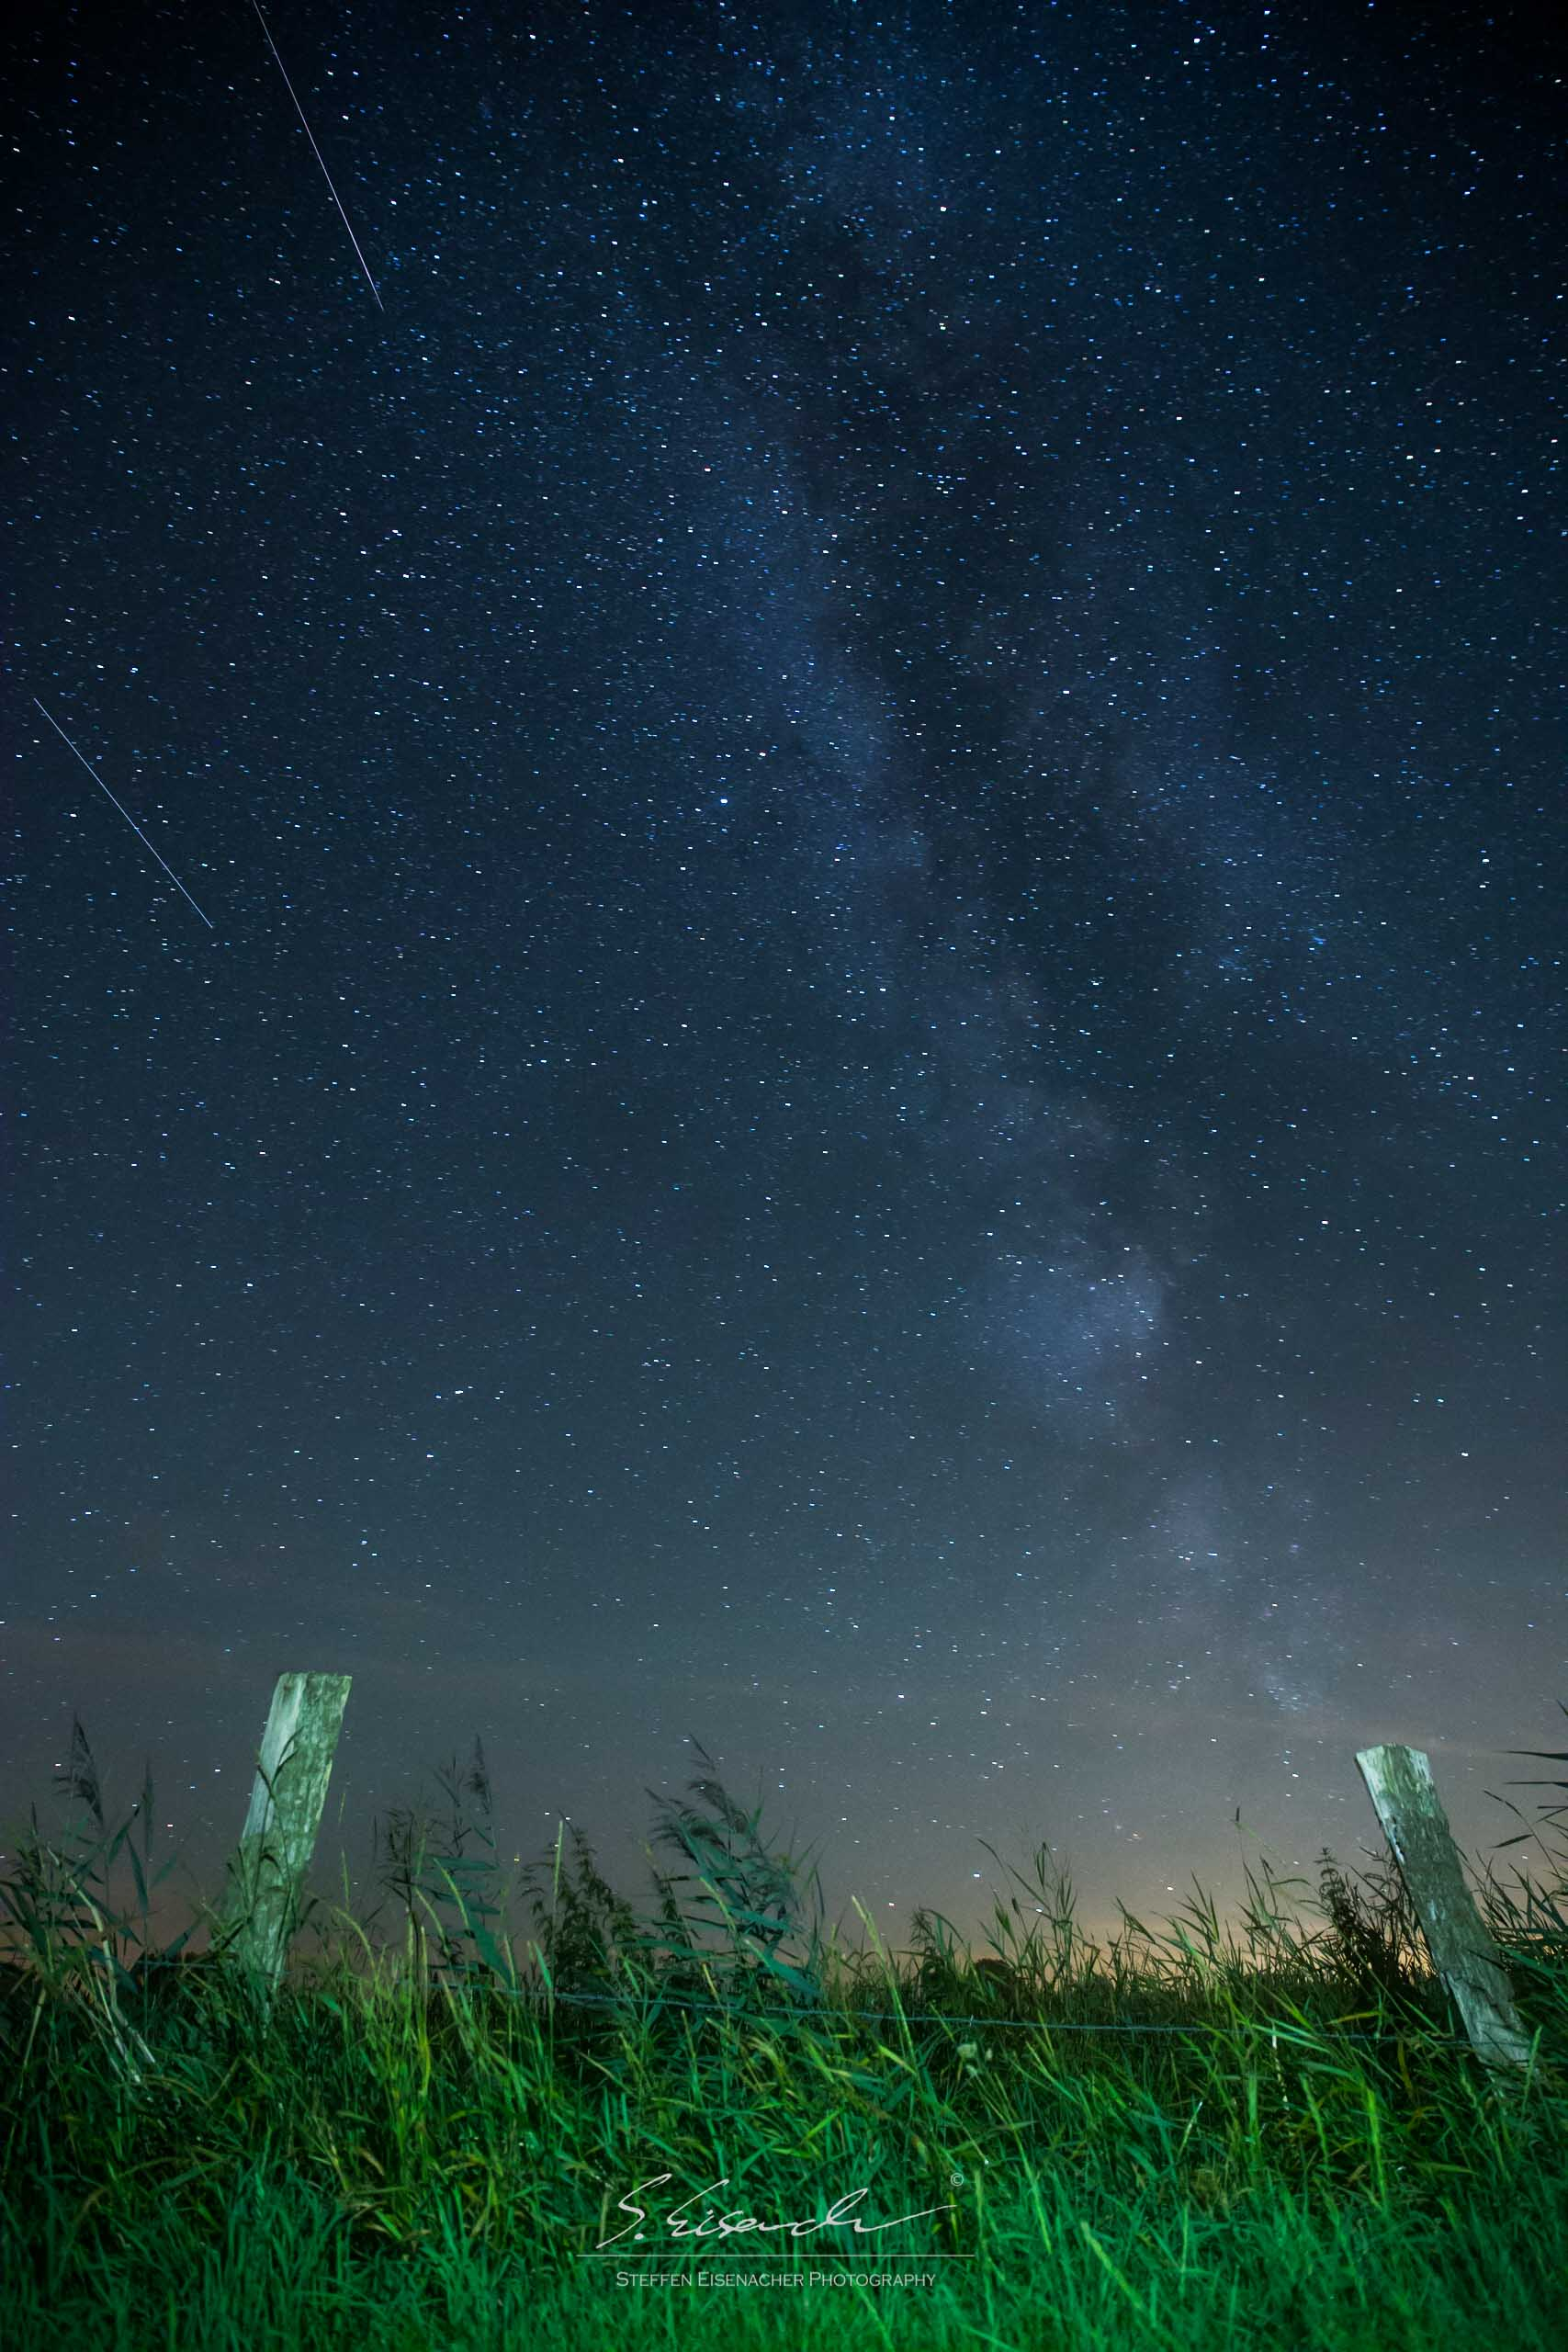 My very first attempt at capturing the Milkyway! 25sec f/4 ISO4000 24mm Full Frame